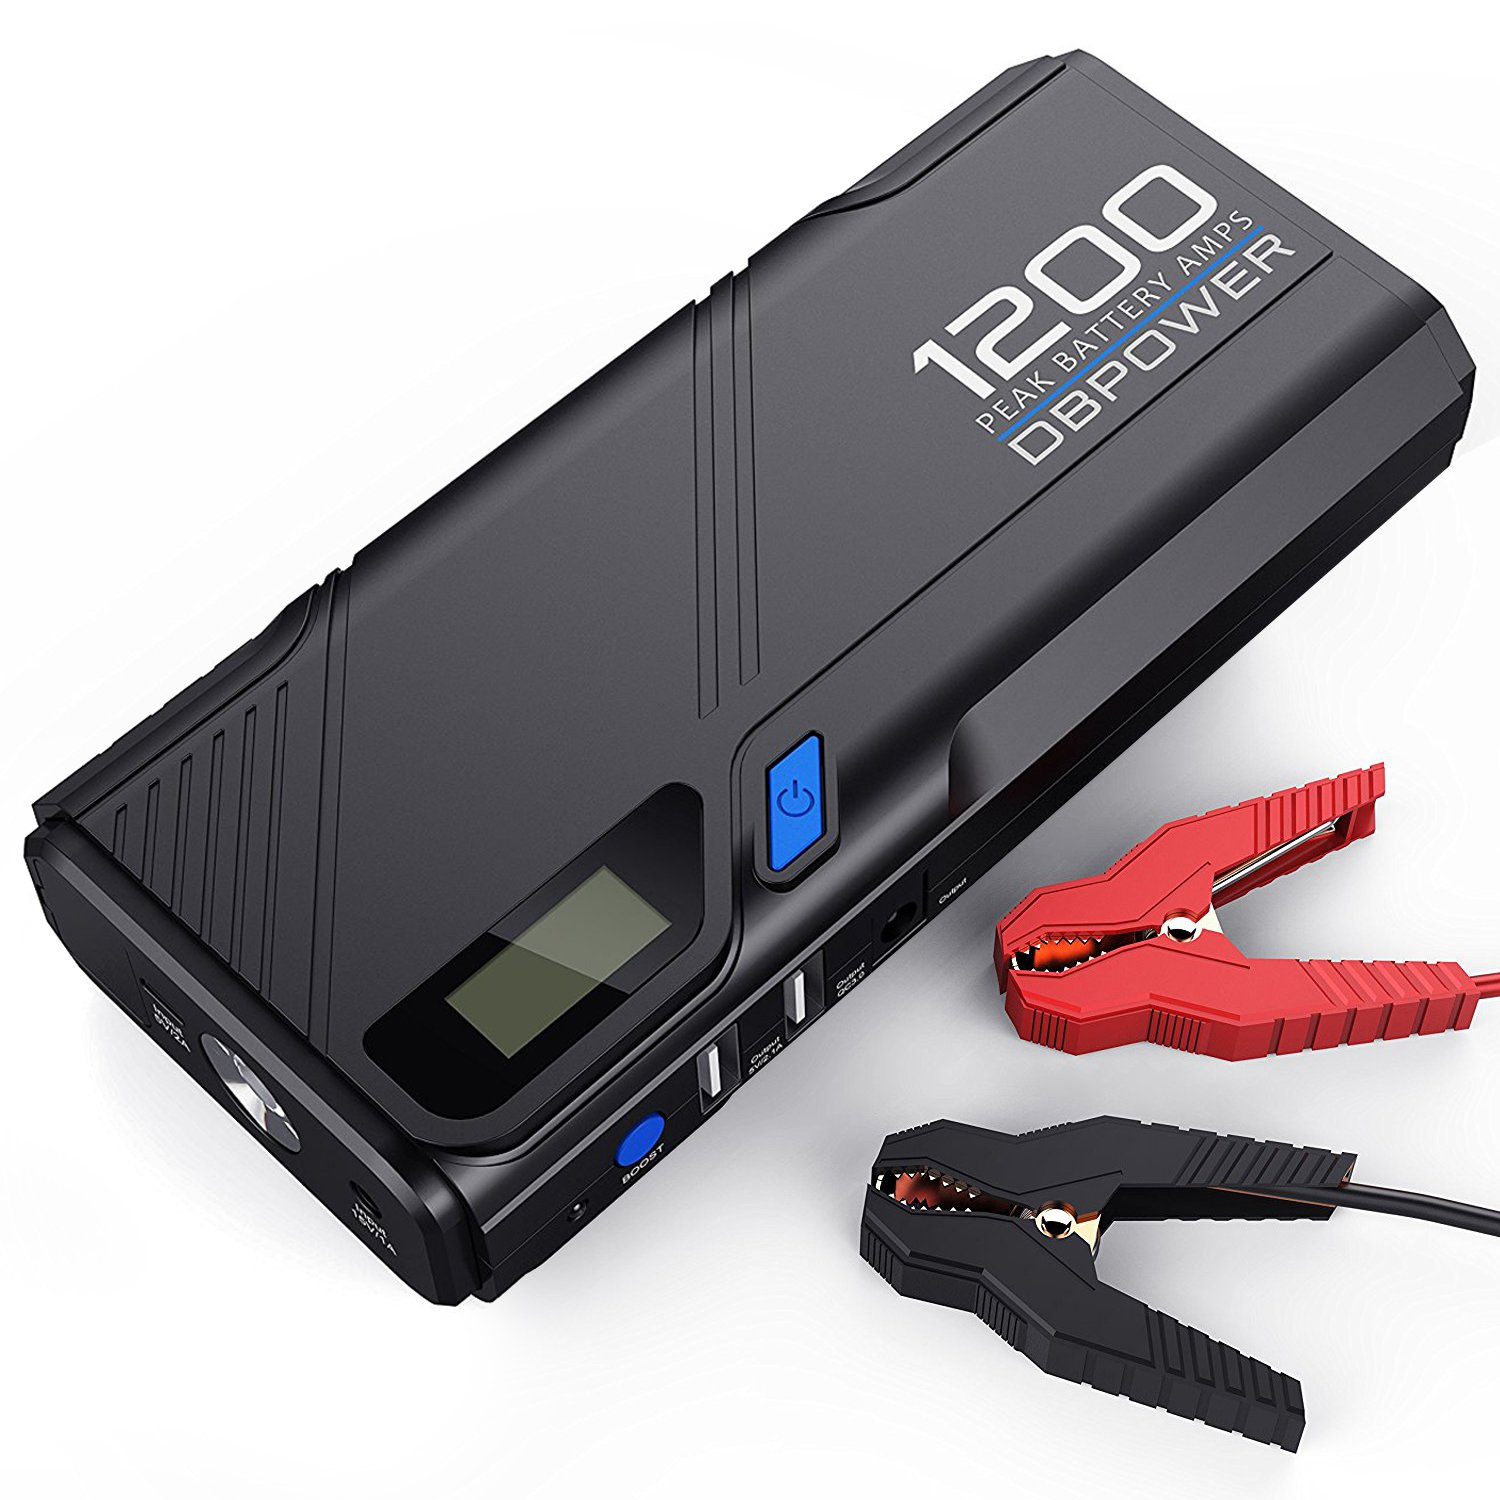 dbpower portable car jump starter quick charge 3 0 power ban forums cnet. Black Bedroom Furniture Sets. Home Design Ideas